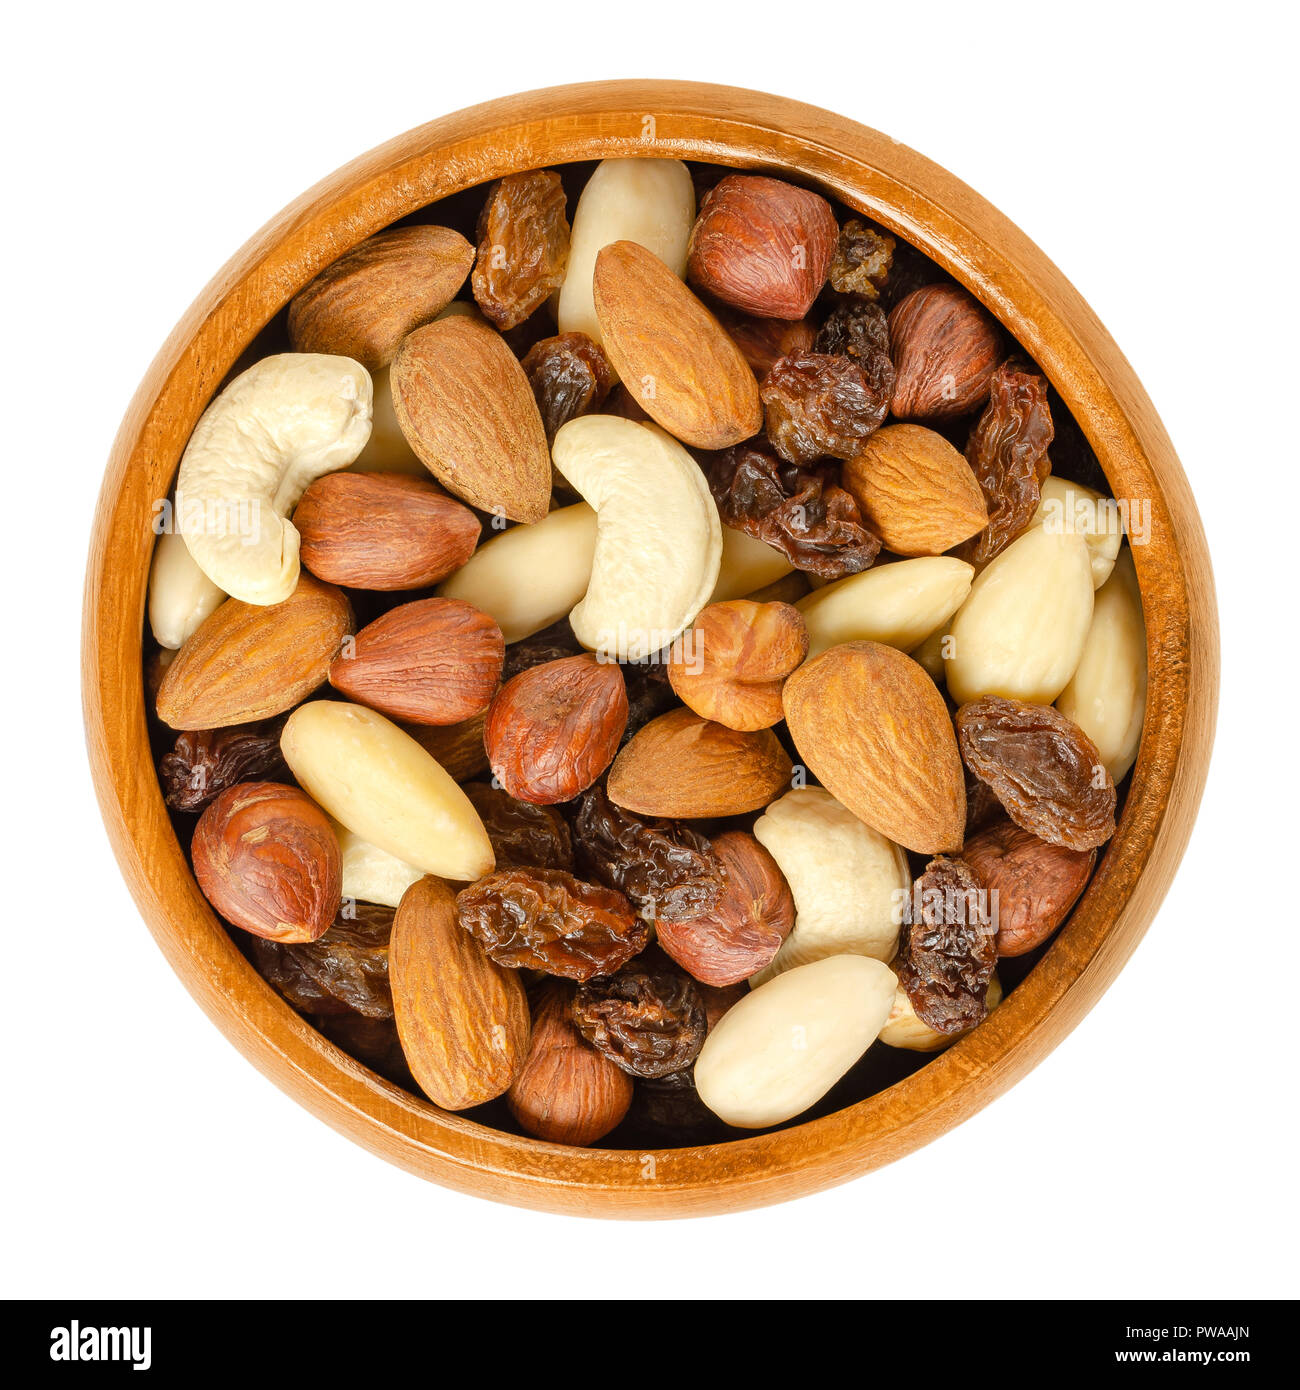 Nuts and raisins in wooden bowl. Snack mix of dried almonds, hazelnuts, cashews and raisins. Trail mix. Edible, raw, organic and vegan. - Stock Image